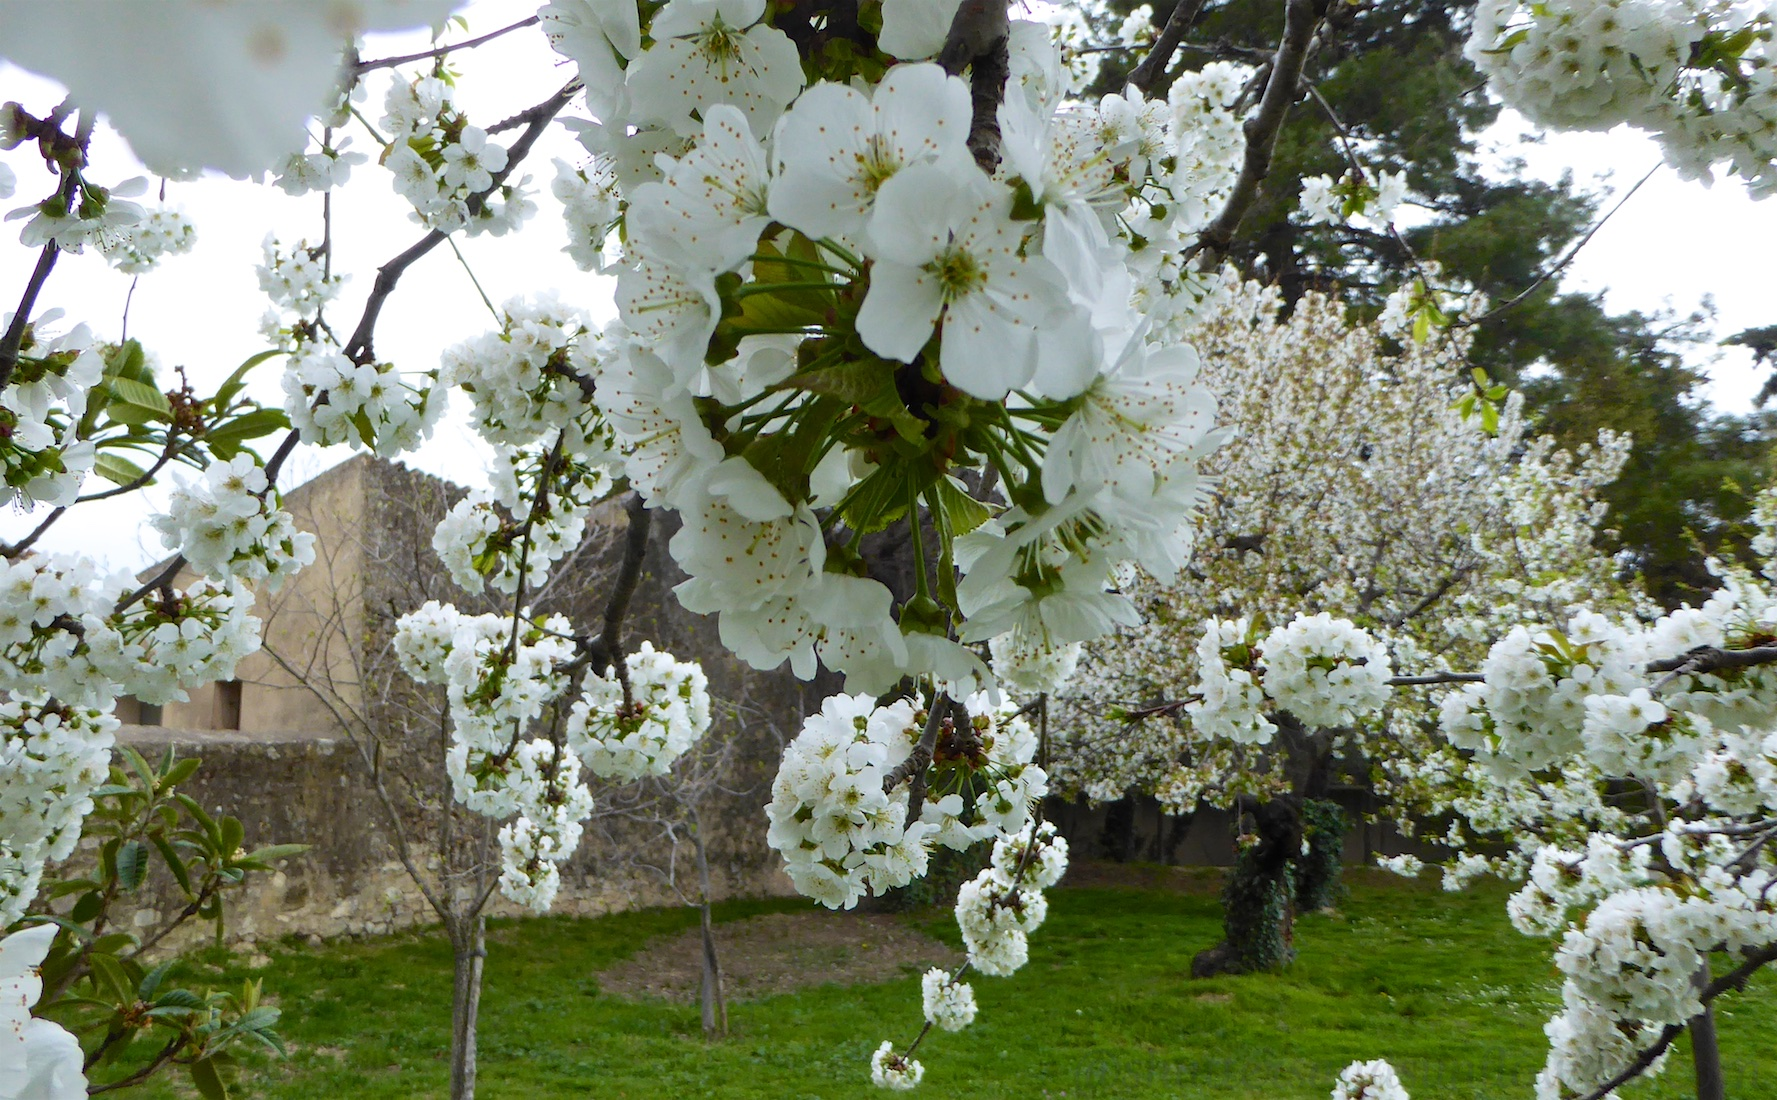 Spting blossoms in Lourmarin, Luberon, Provence